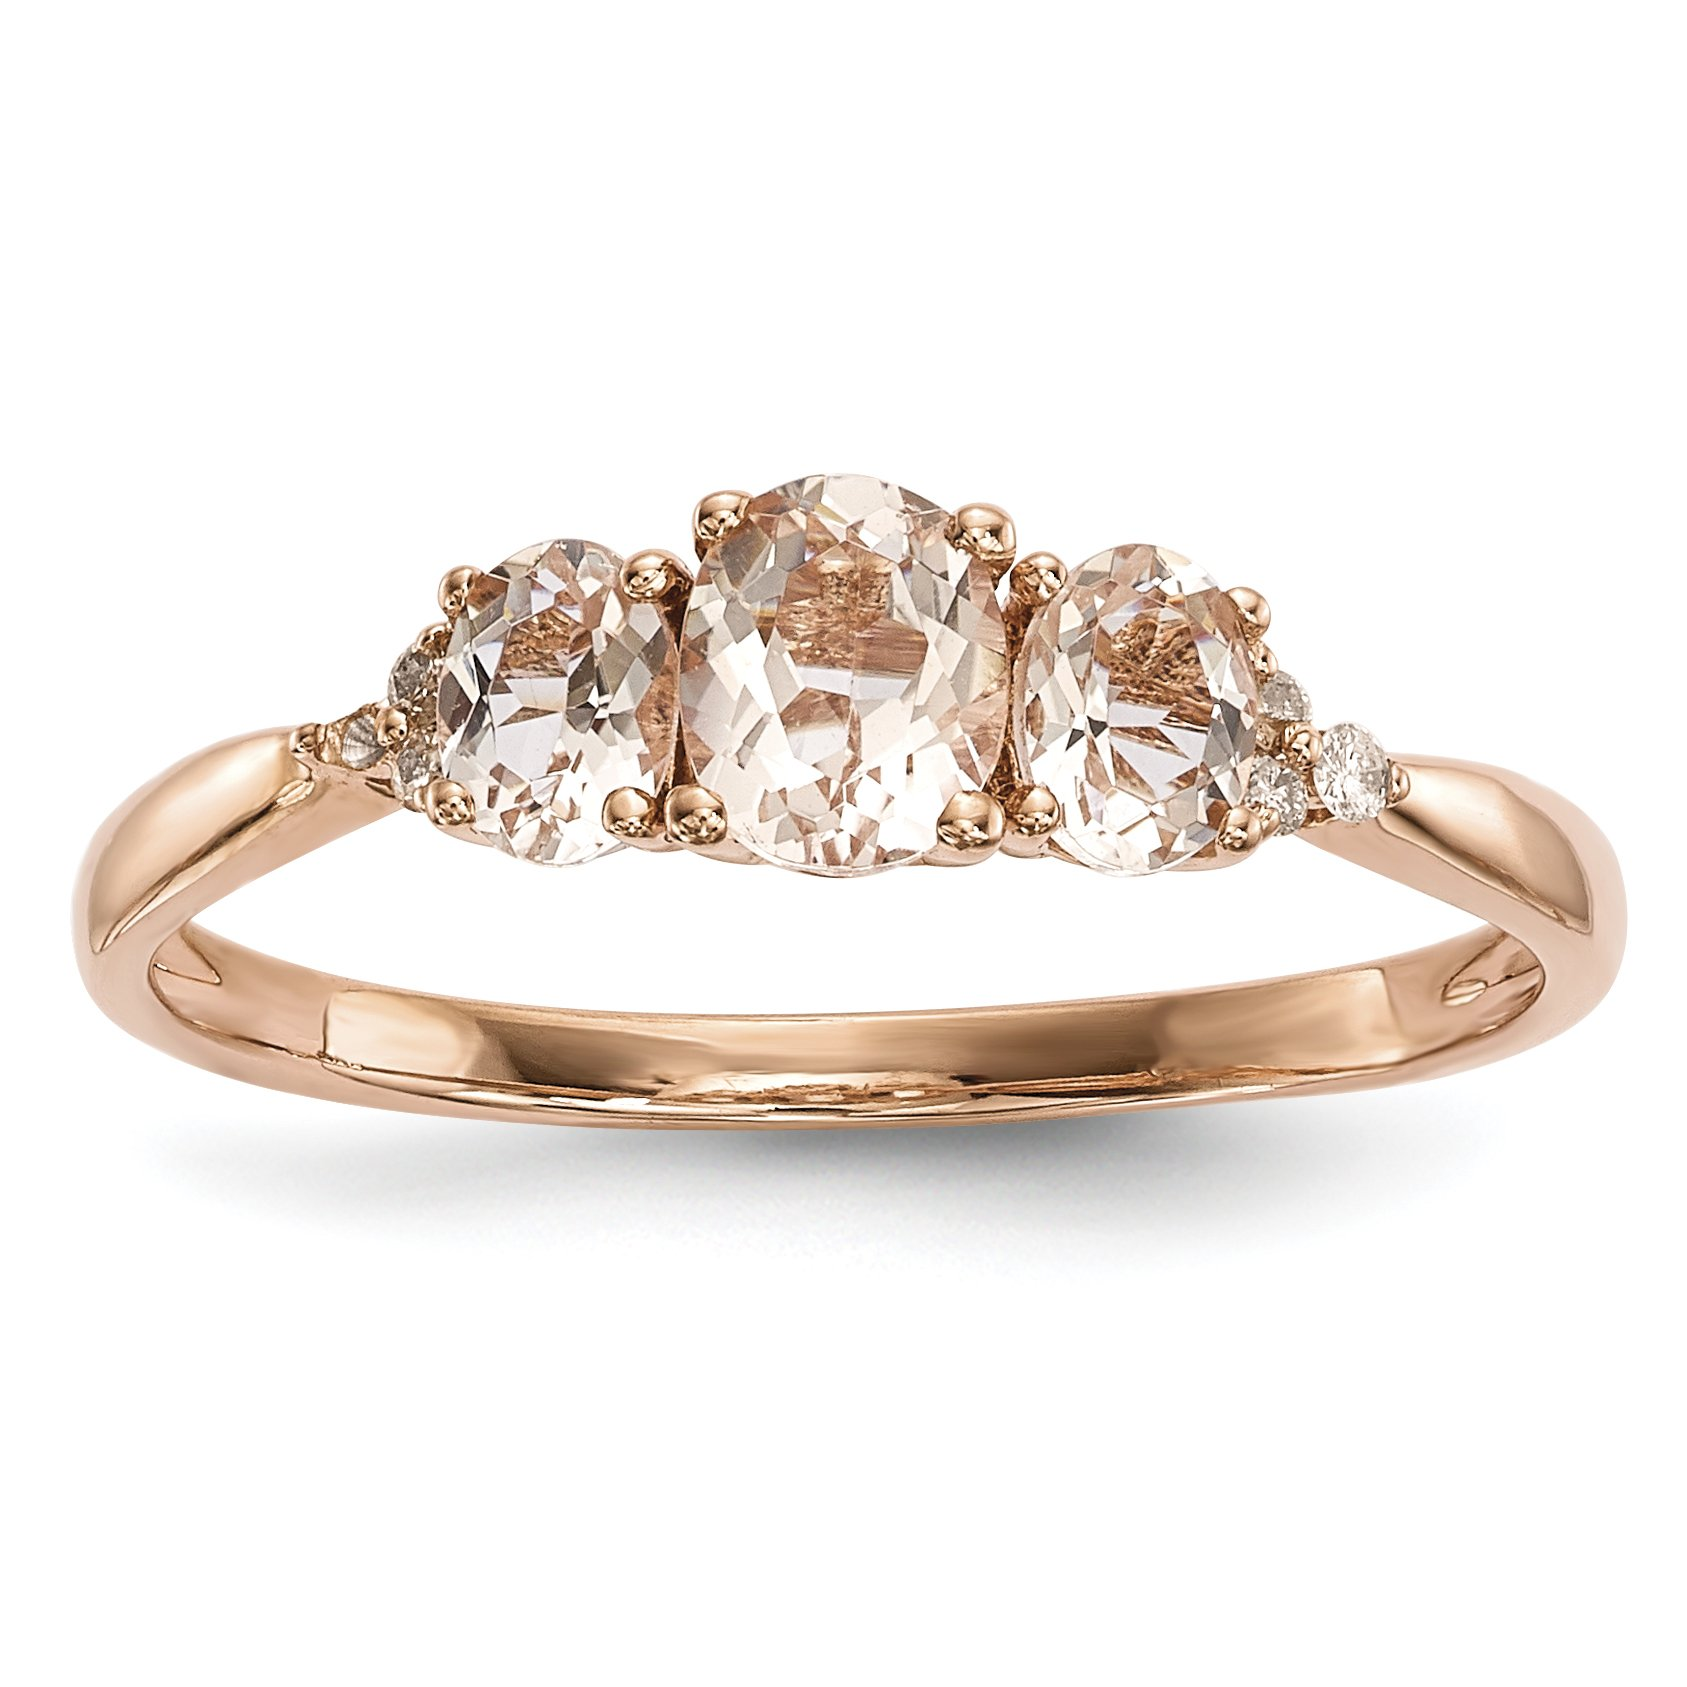 ICE CARATS 14k Rose Gold Triple Pink Morganite Diamond Band Ring Size 7.00 Gemstone Fine Jewelry Gift Set For Women Heart